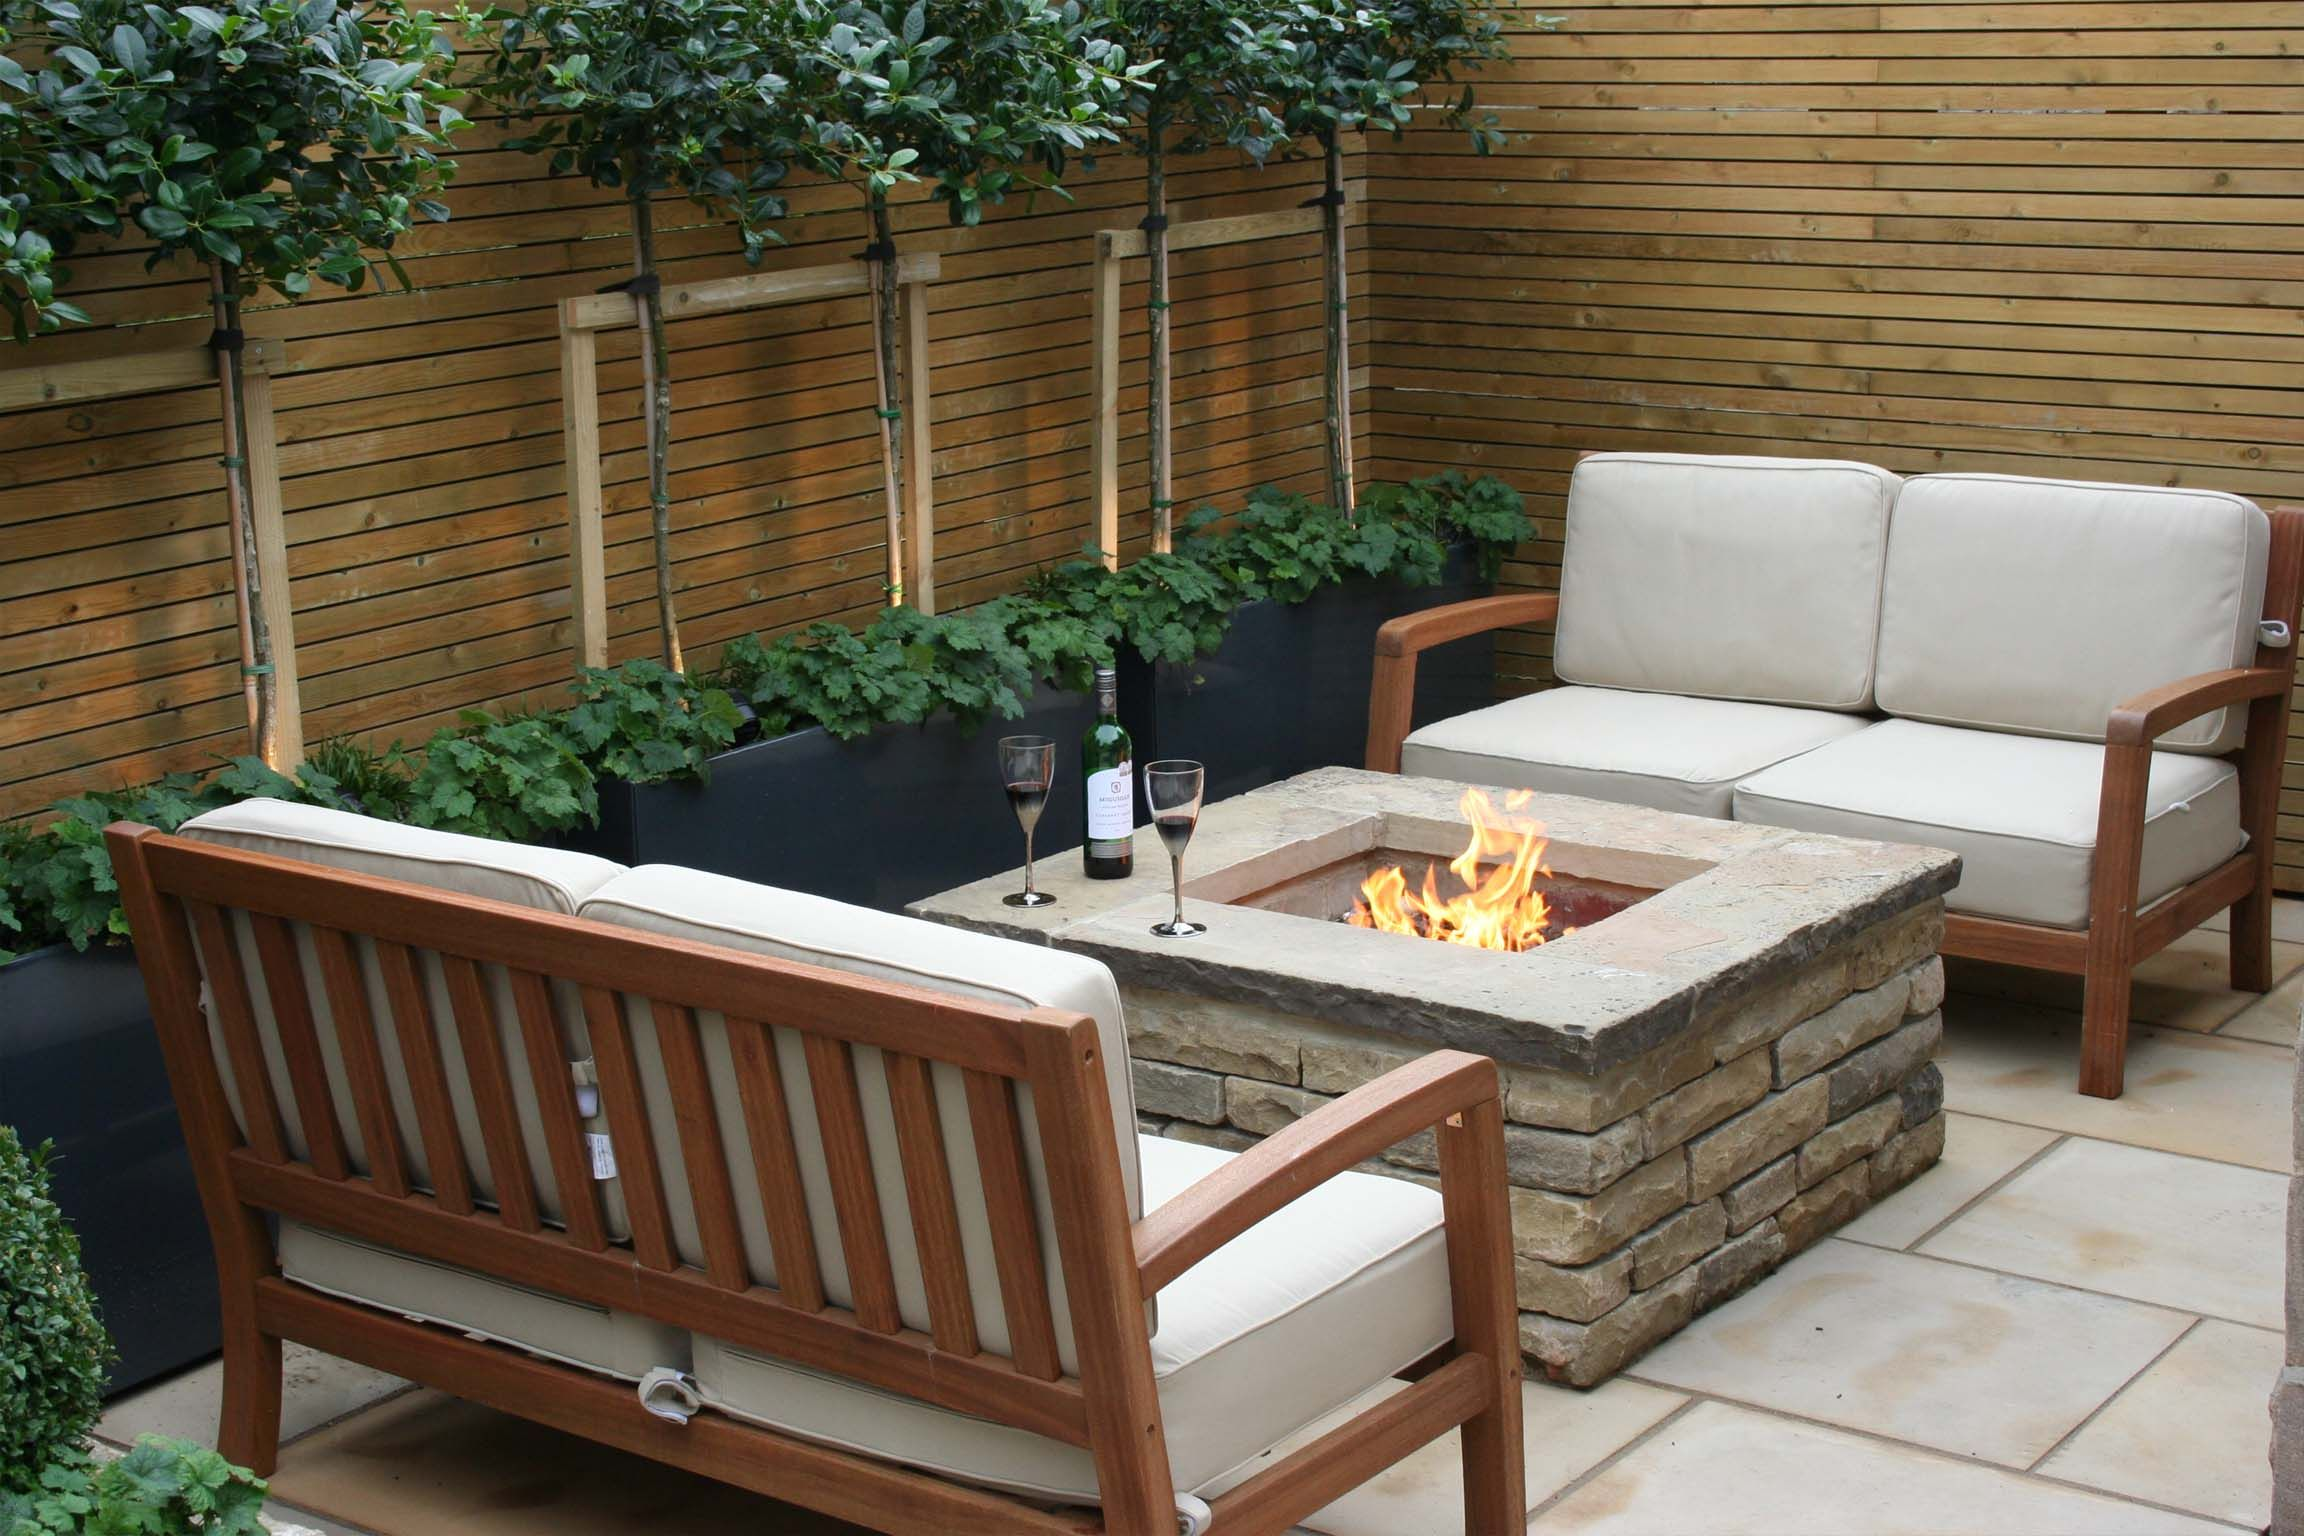 Habitat Outside Sofa Urban Chic Courtyard Garden Outdoor Fire Pit Outdoor Sofas Bestall